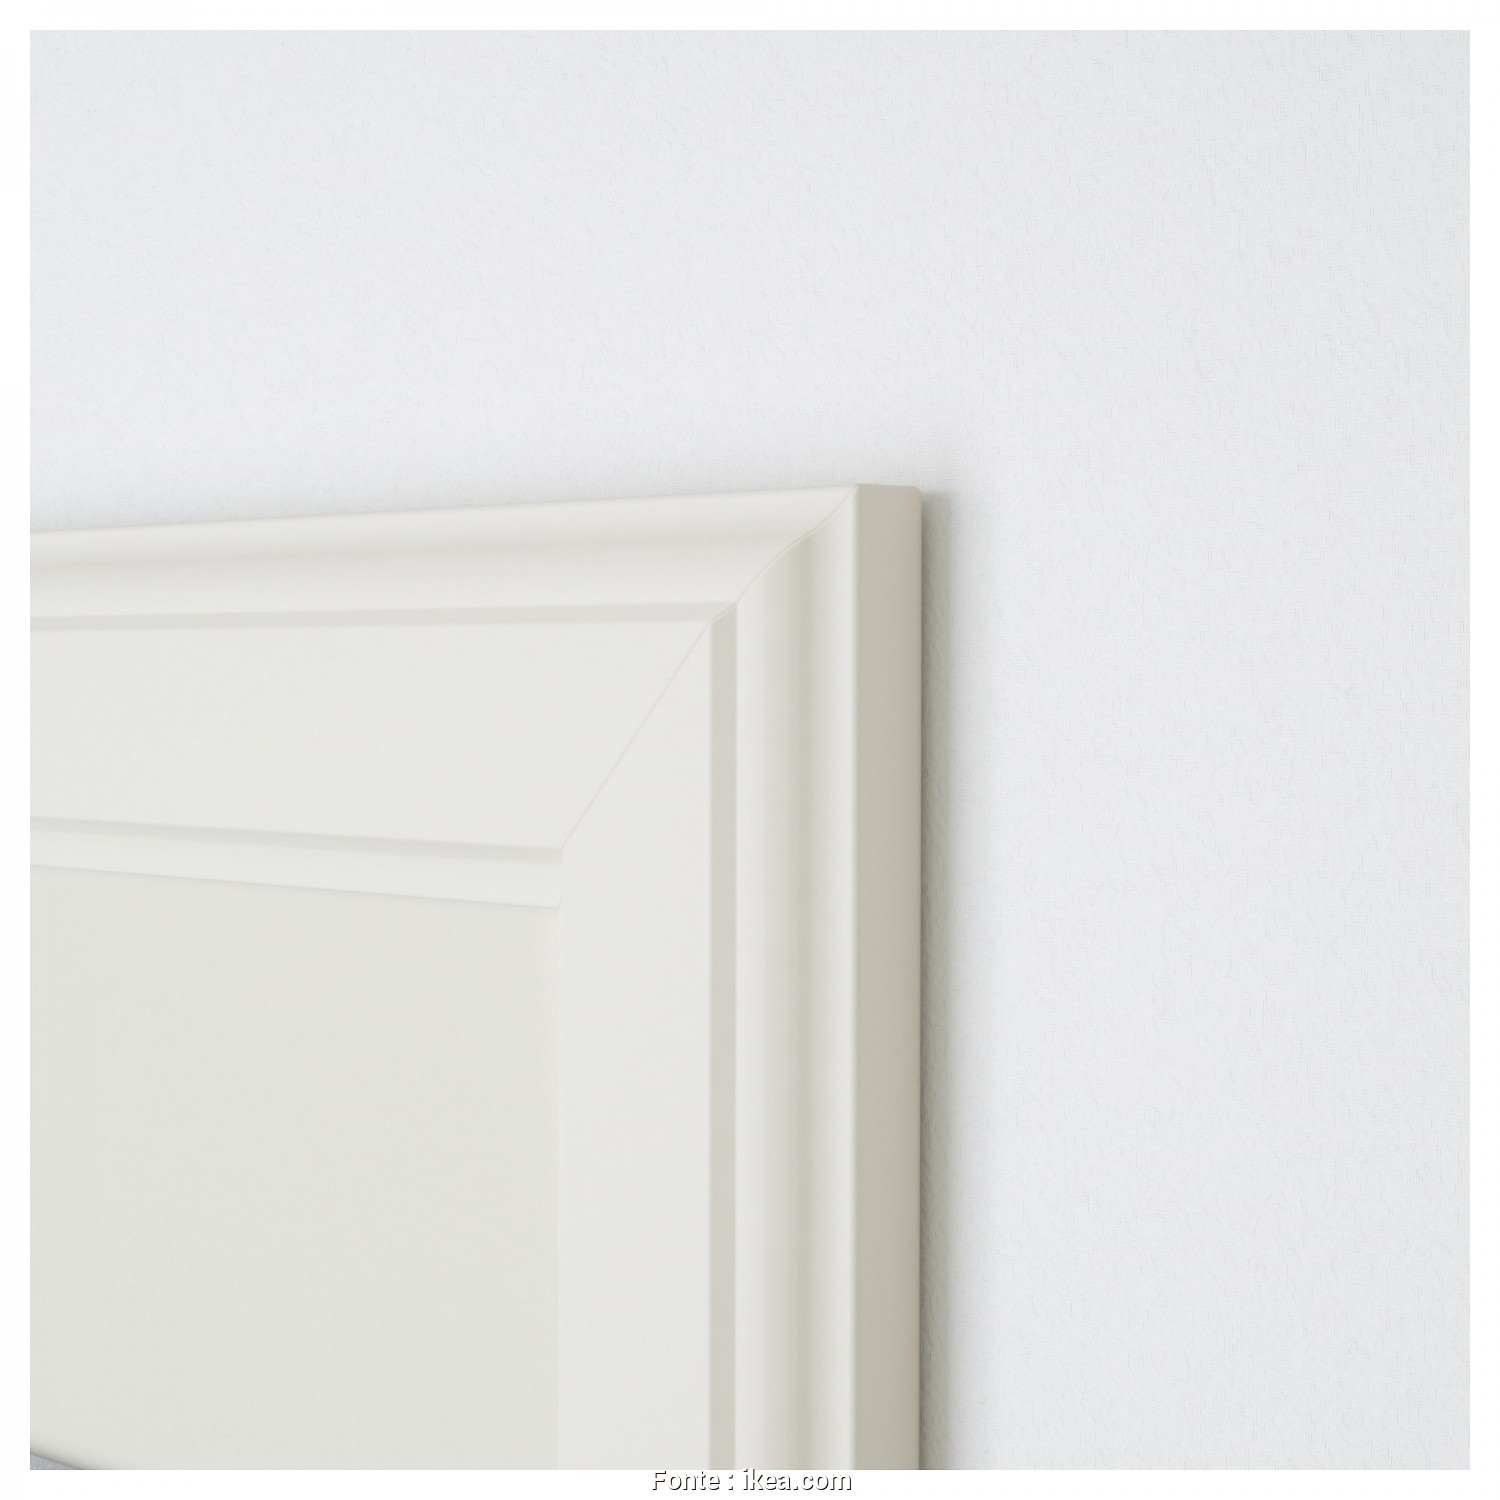 Copricuscini Ikea 50X50, Freddo IKEA VIRSERUM Frame, Mount Enhances, Picture, Makes Framing Easy